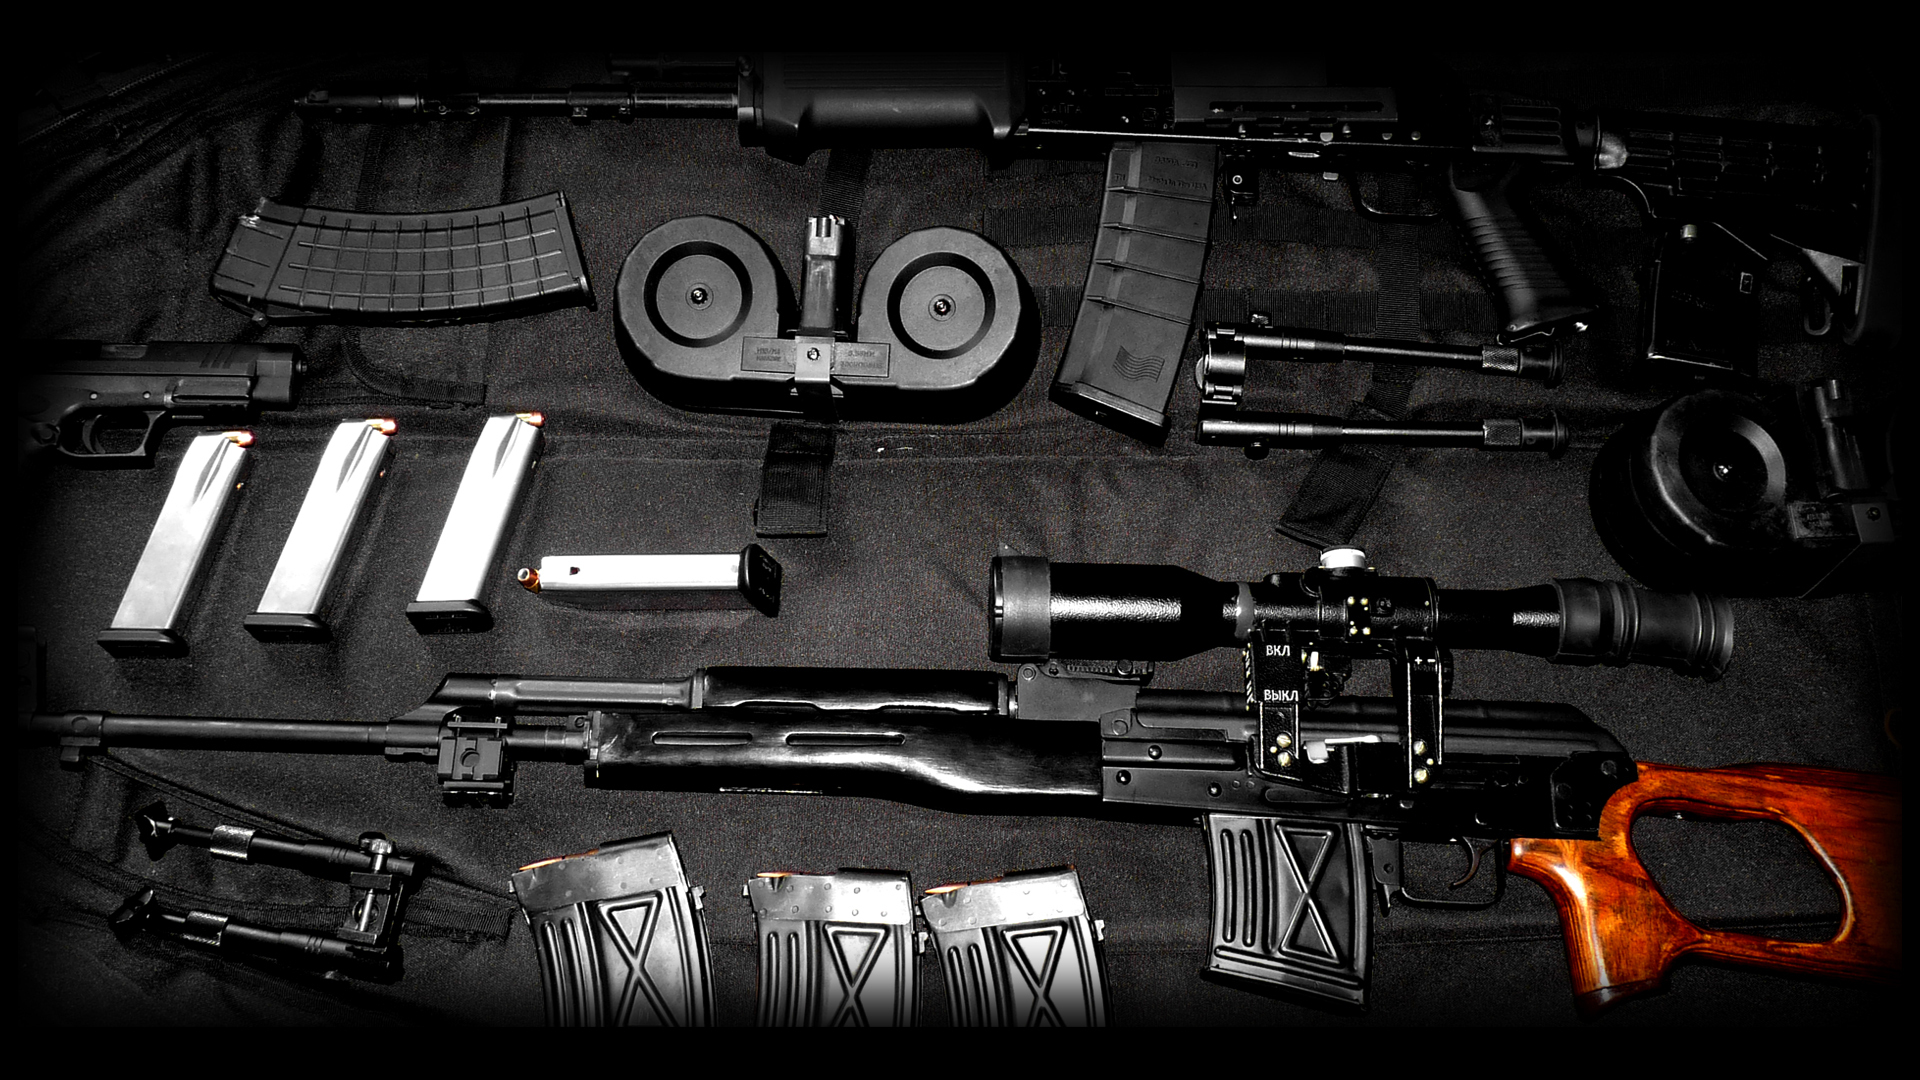 Rifle Wallpaper machine desktop gun Wallpapers 1920x1080